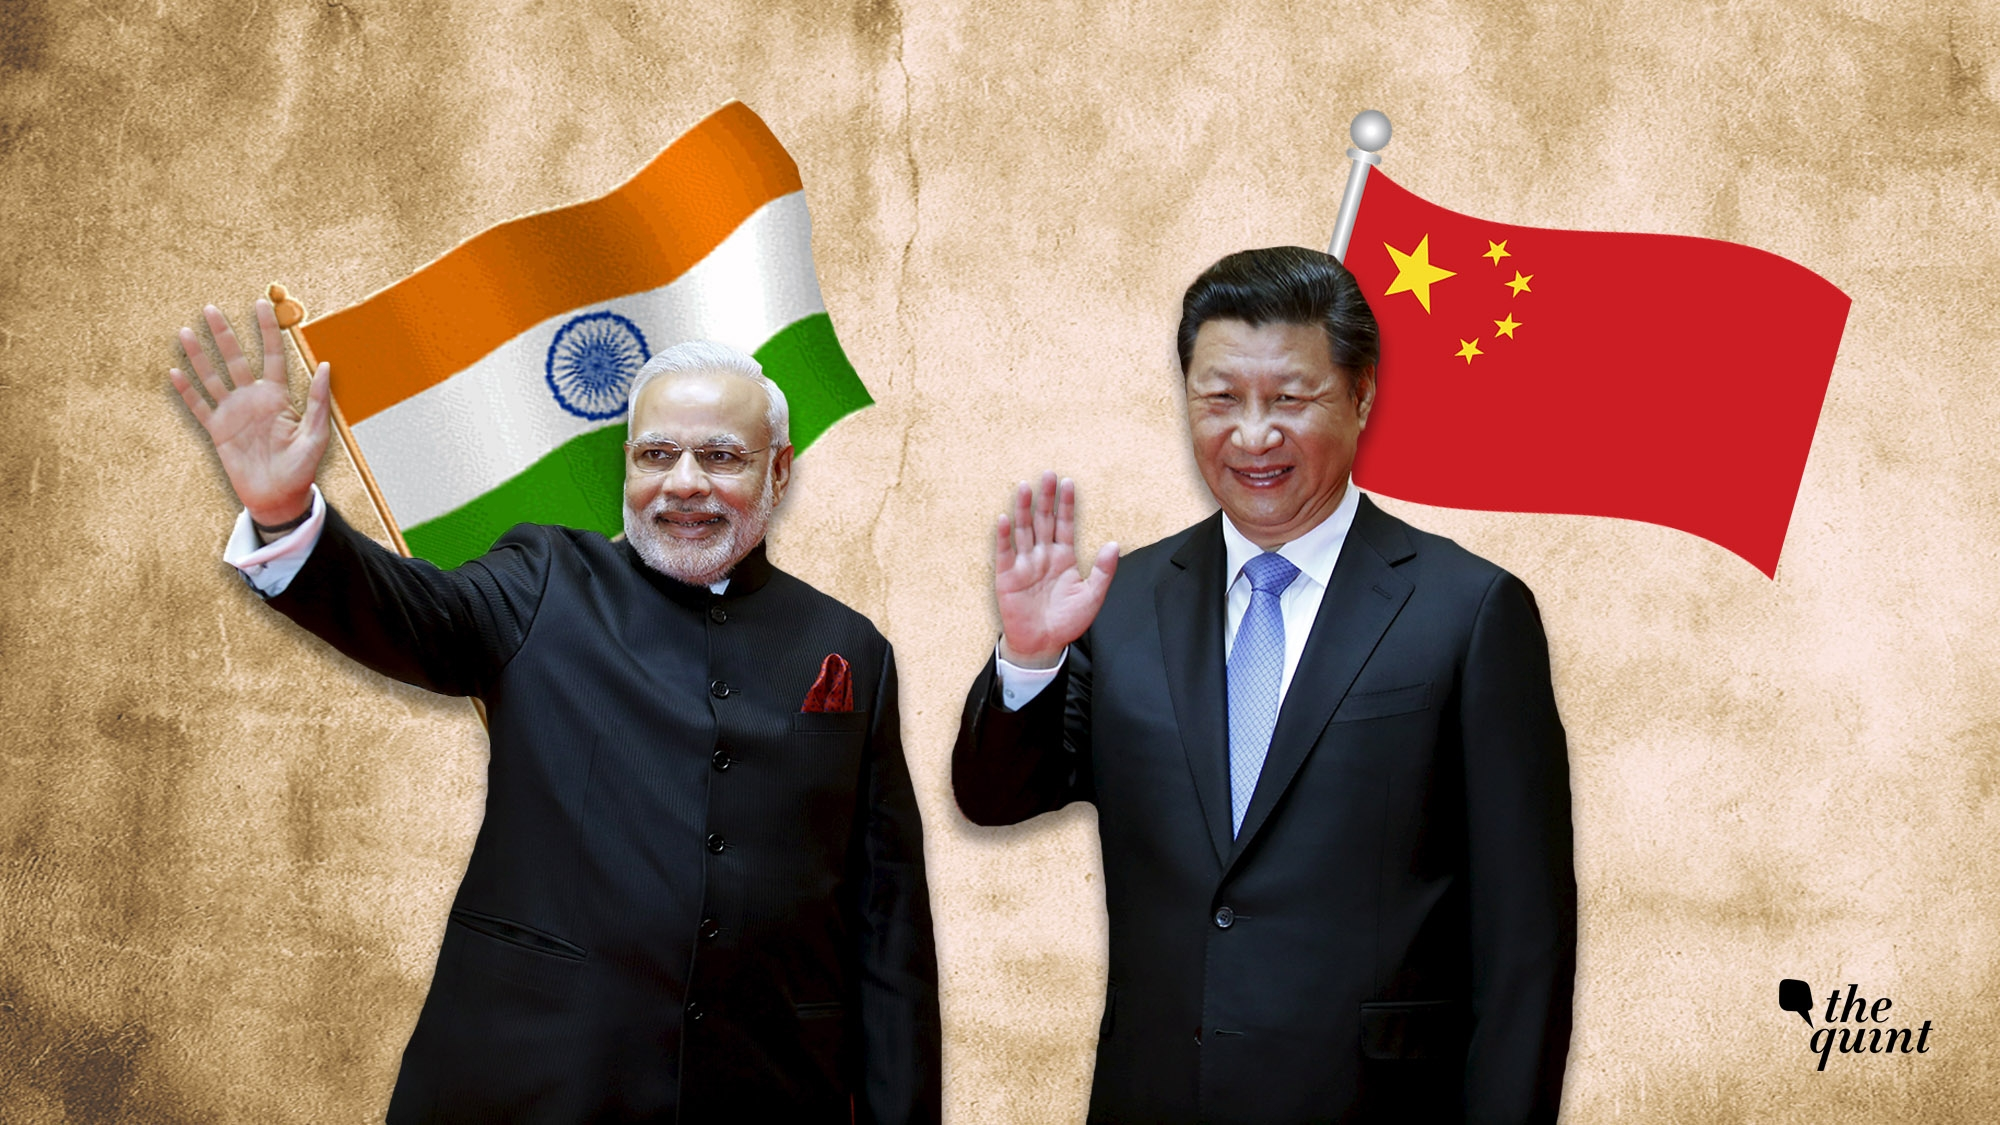 Terror, Kashmir & Trade: Deconstructing Modi-Xi's Chennai Summit